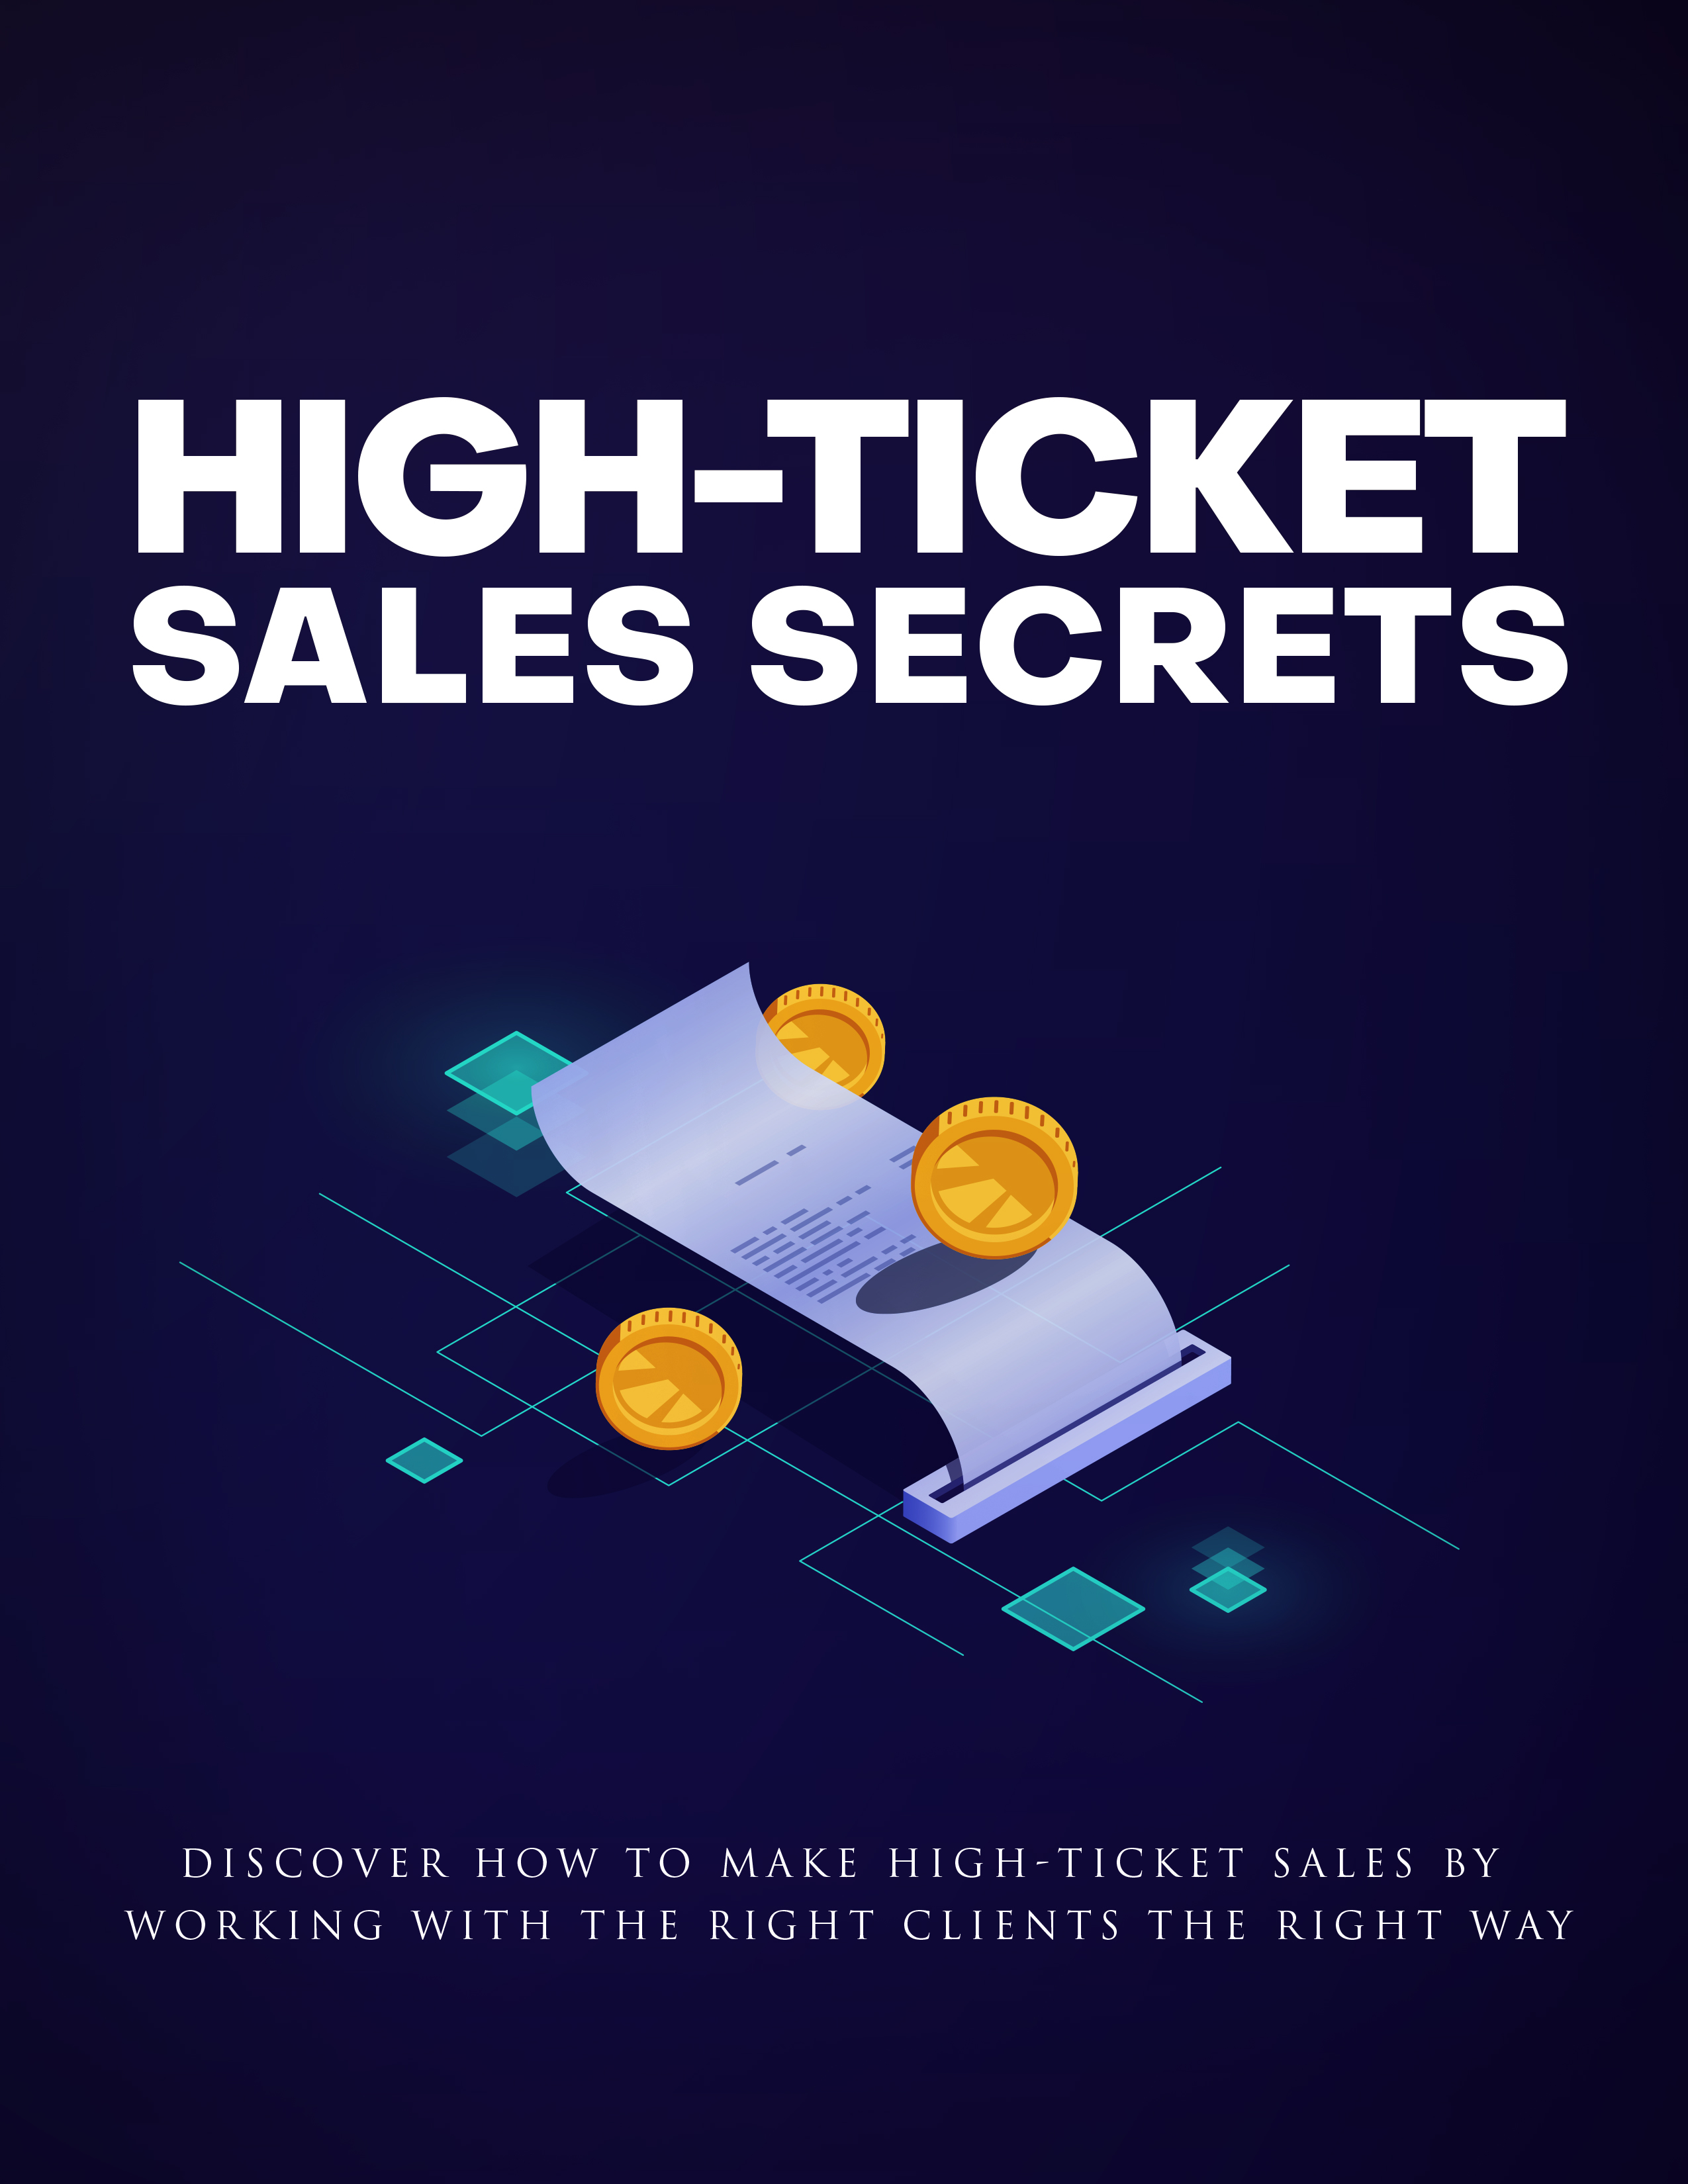 High-Ticket Sales Secrets (Discover How To Make High-Ticket Sales By Working With The Right Clients The Right Way) Ebook's Ebook Image